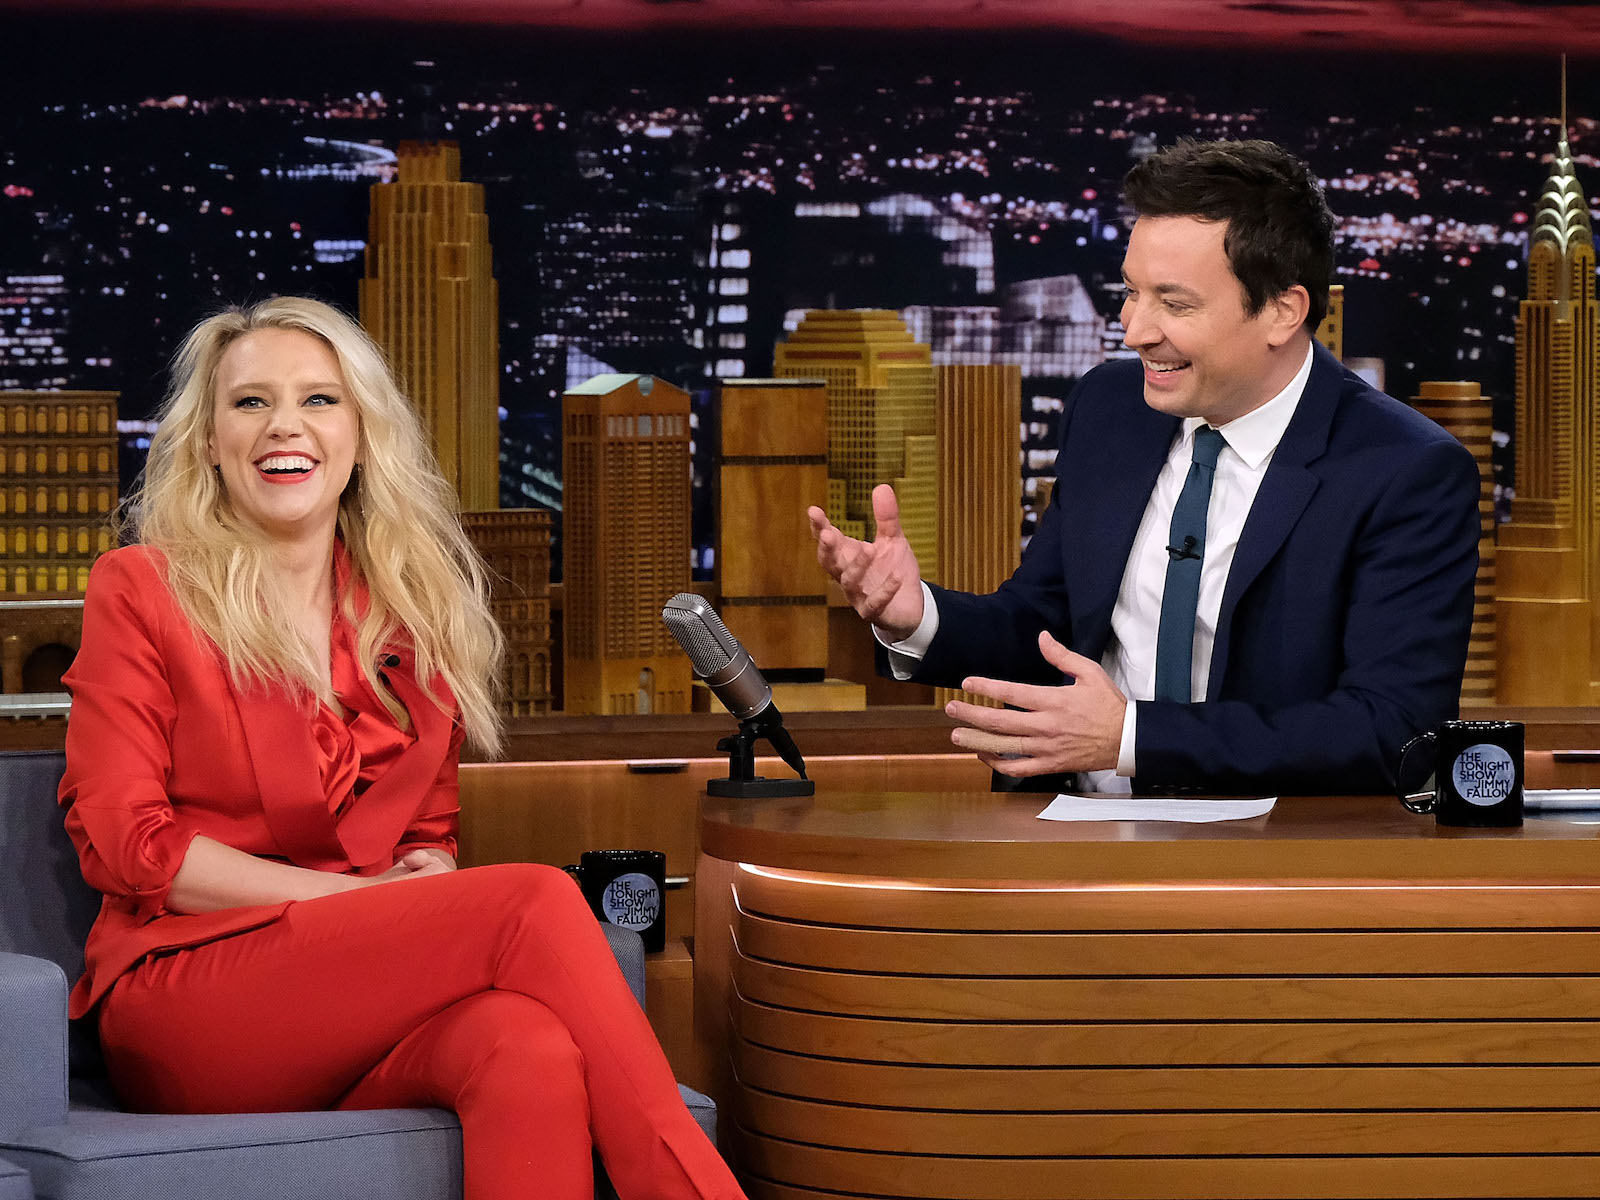 Kate McKinnon Tonight Show